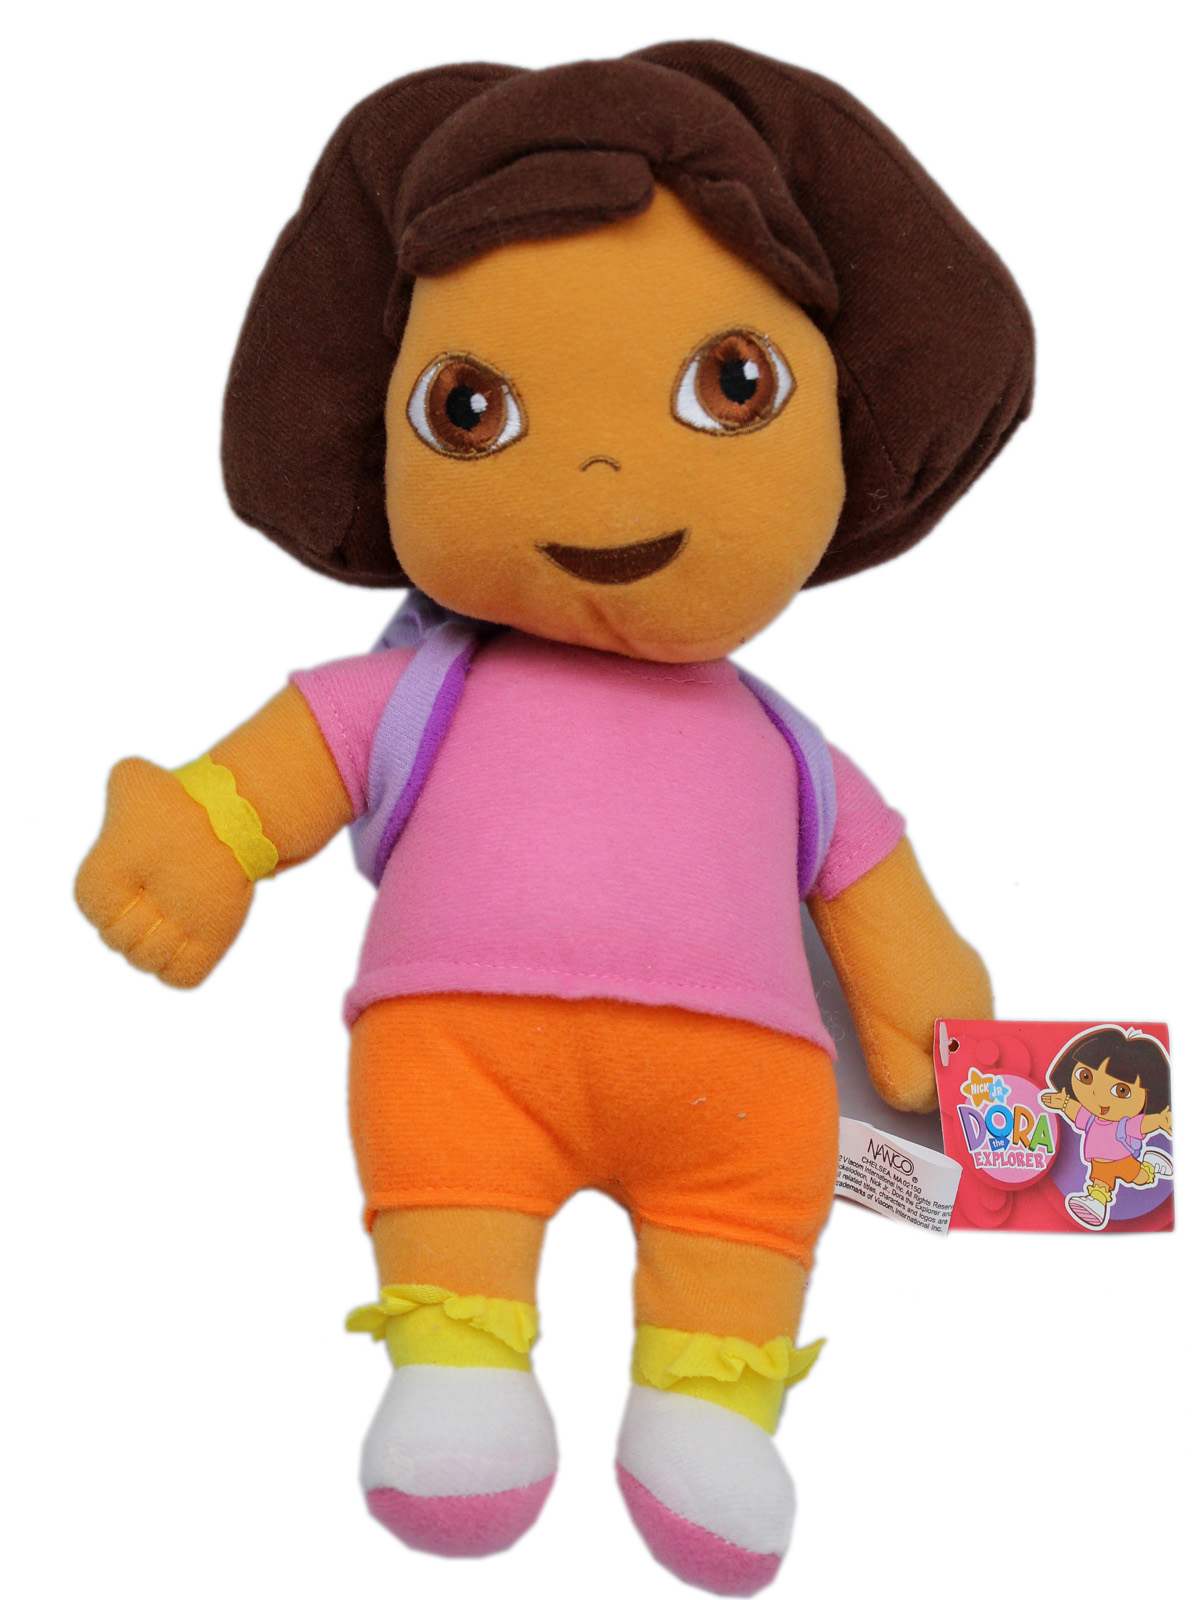 Nick Jr's Dora the Explorer Small Size Dora Plush Toy (11in) by